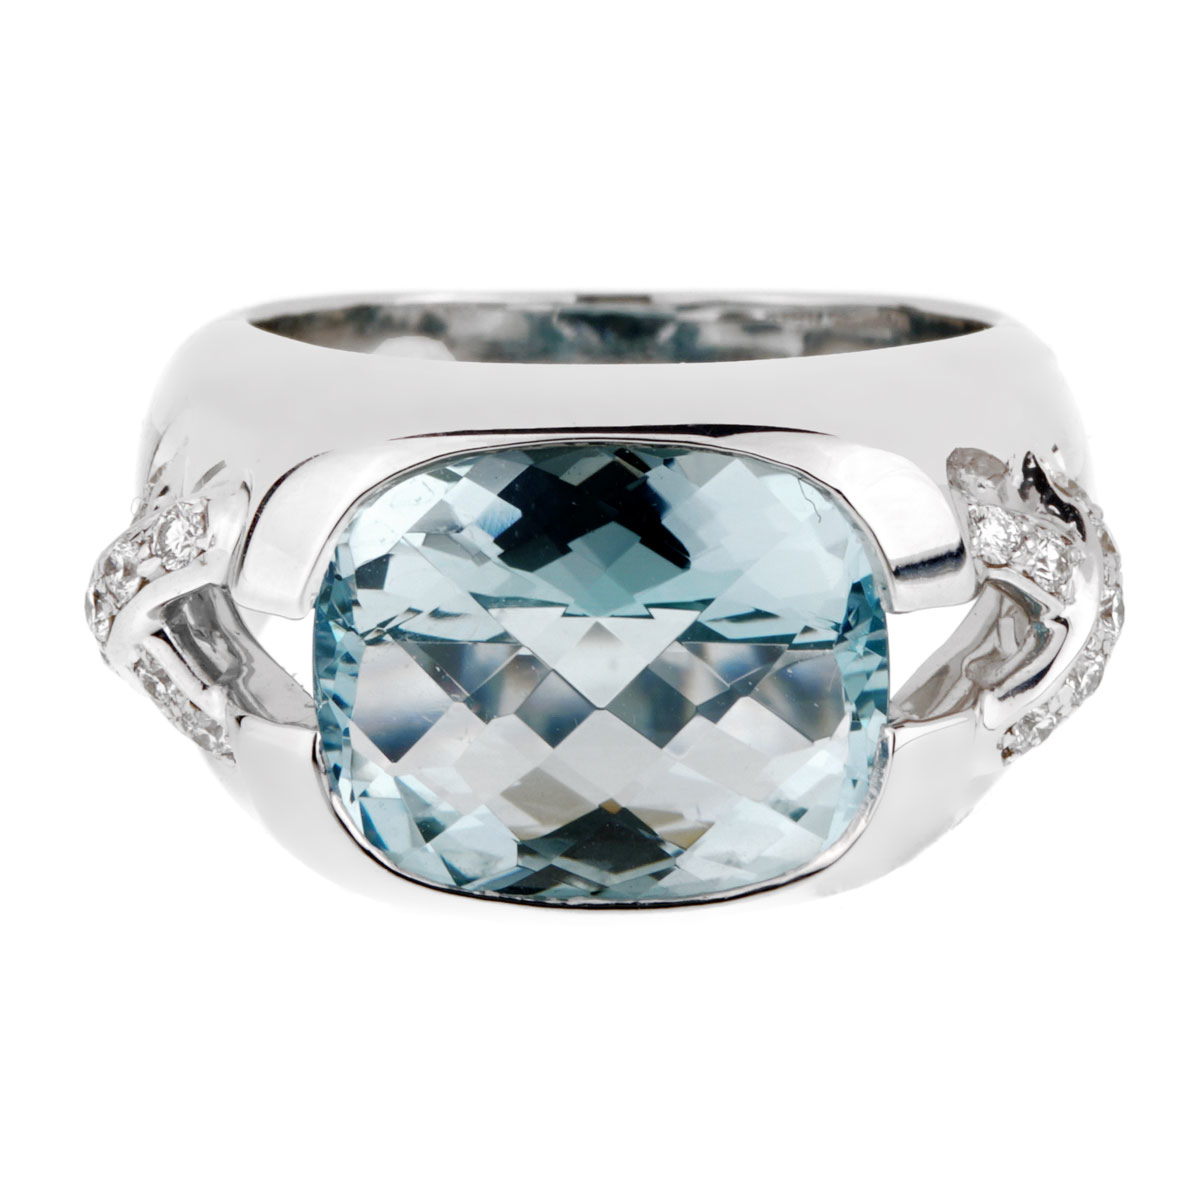 Tiffany & Co Aquamarine Diamond White Gold Ring - Tiffany and Co Jewelry